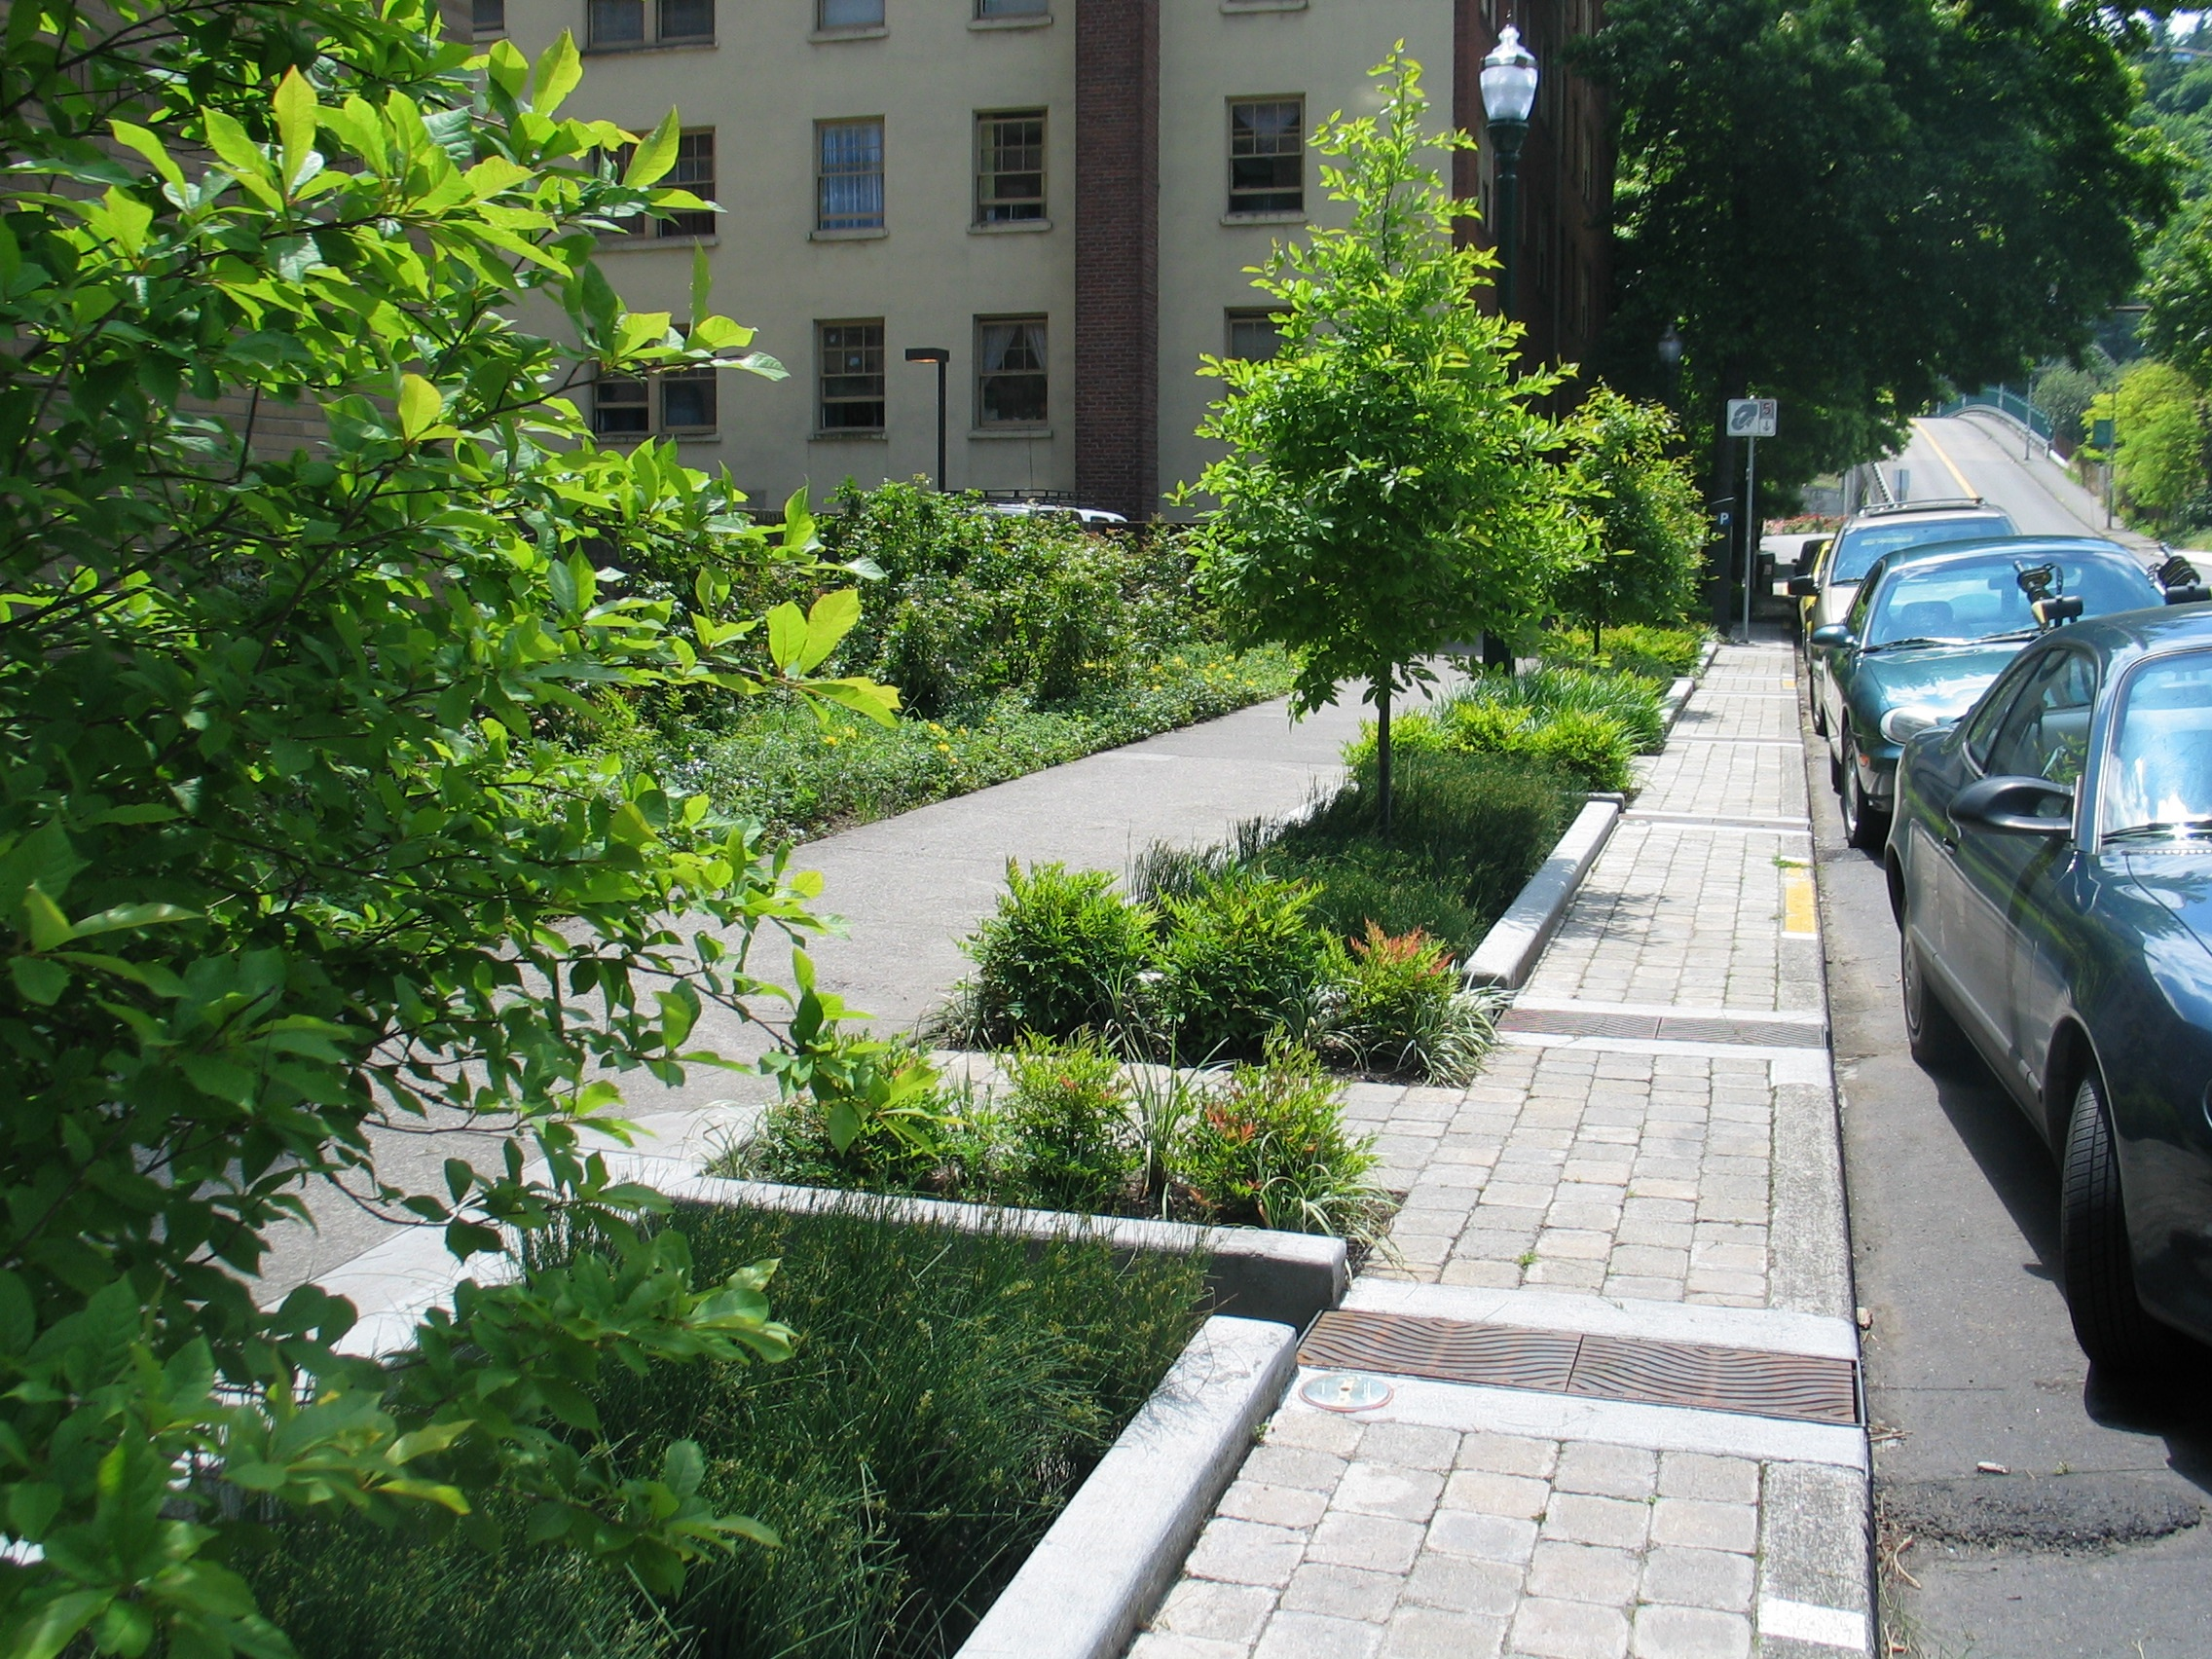 Green infrastructure is a great way to help armor urban centers against climate change.